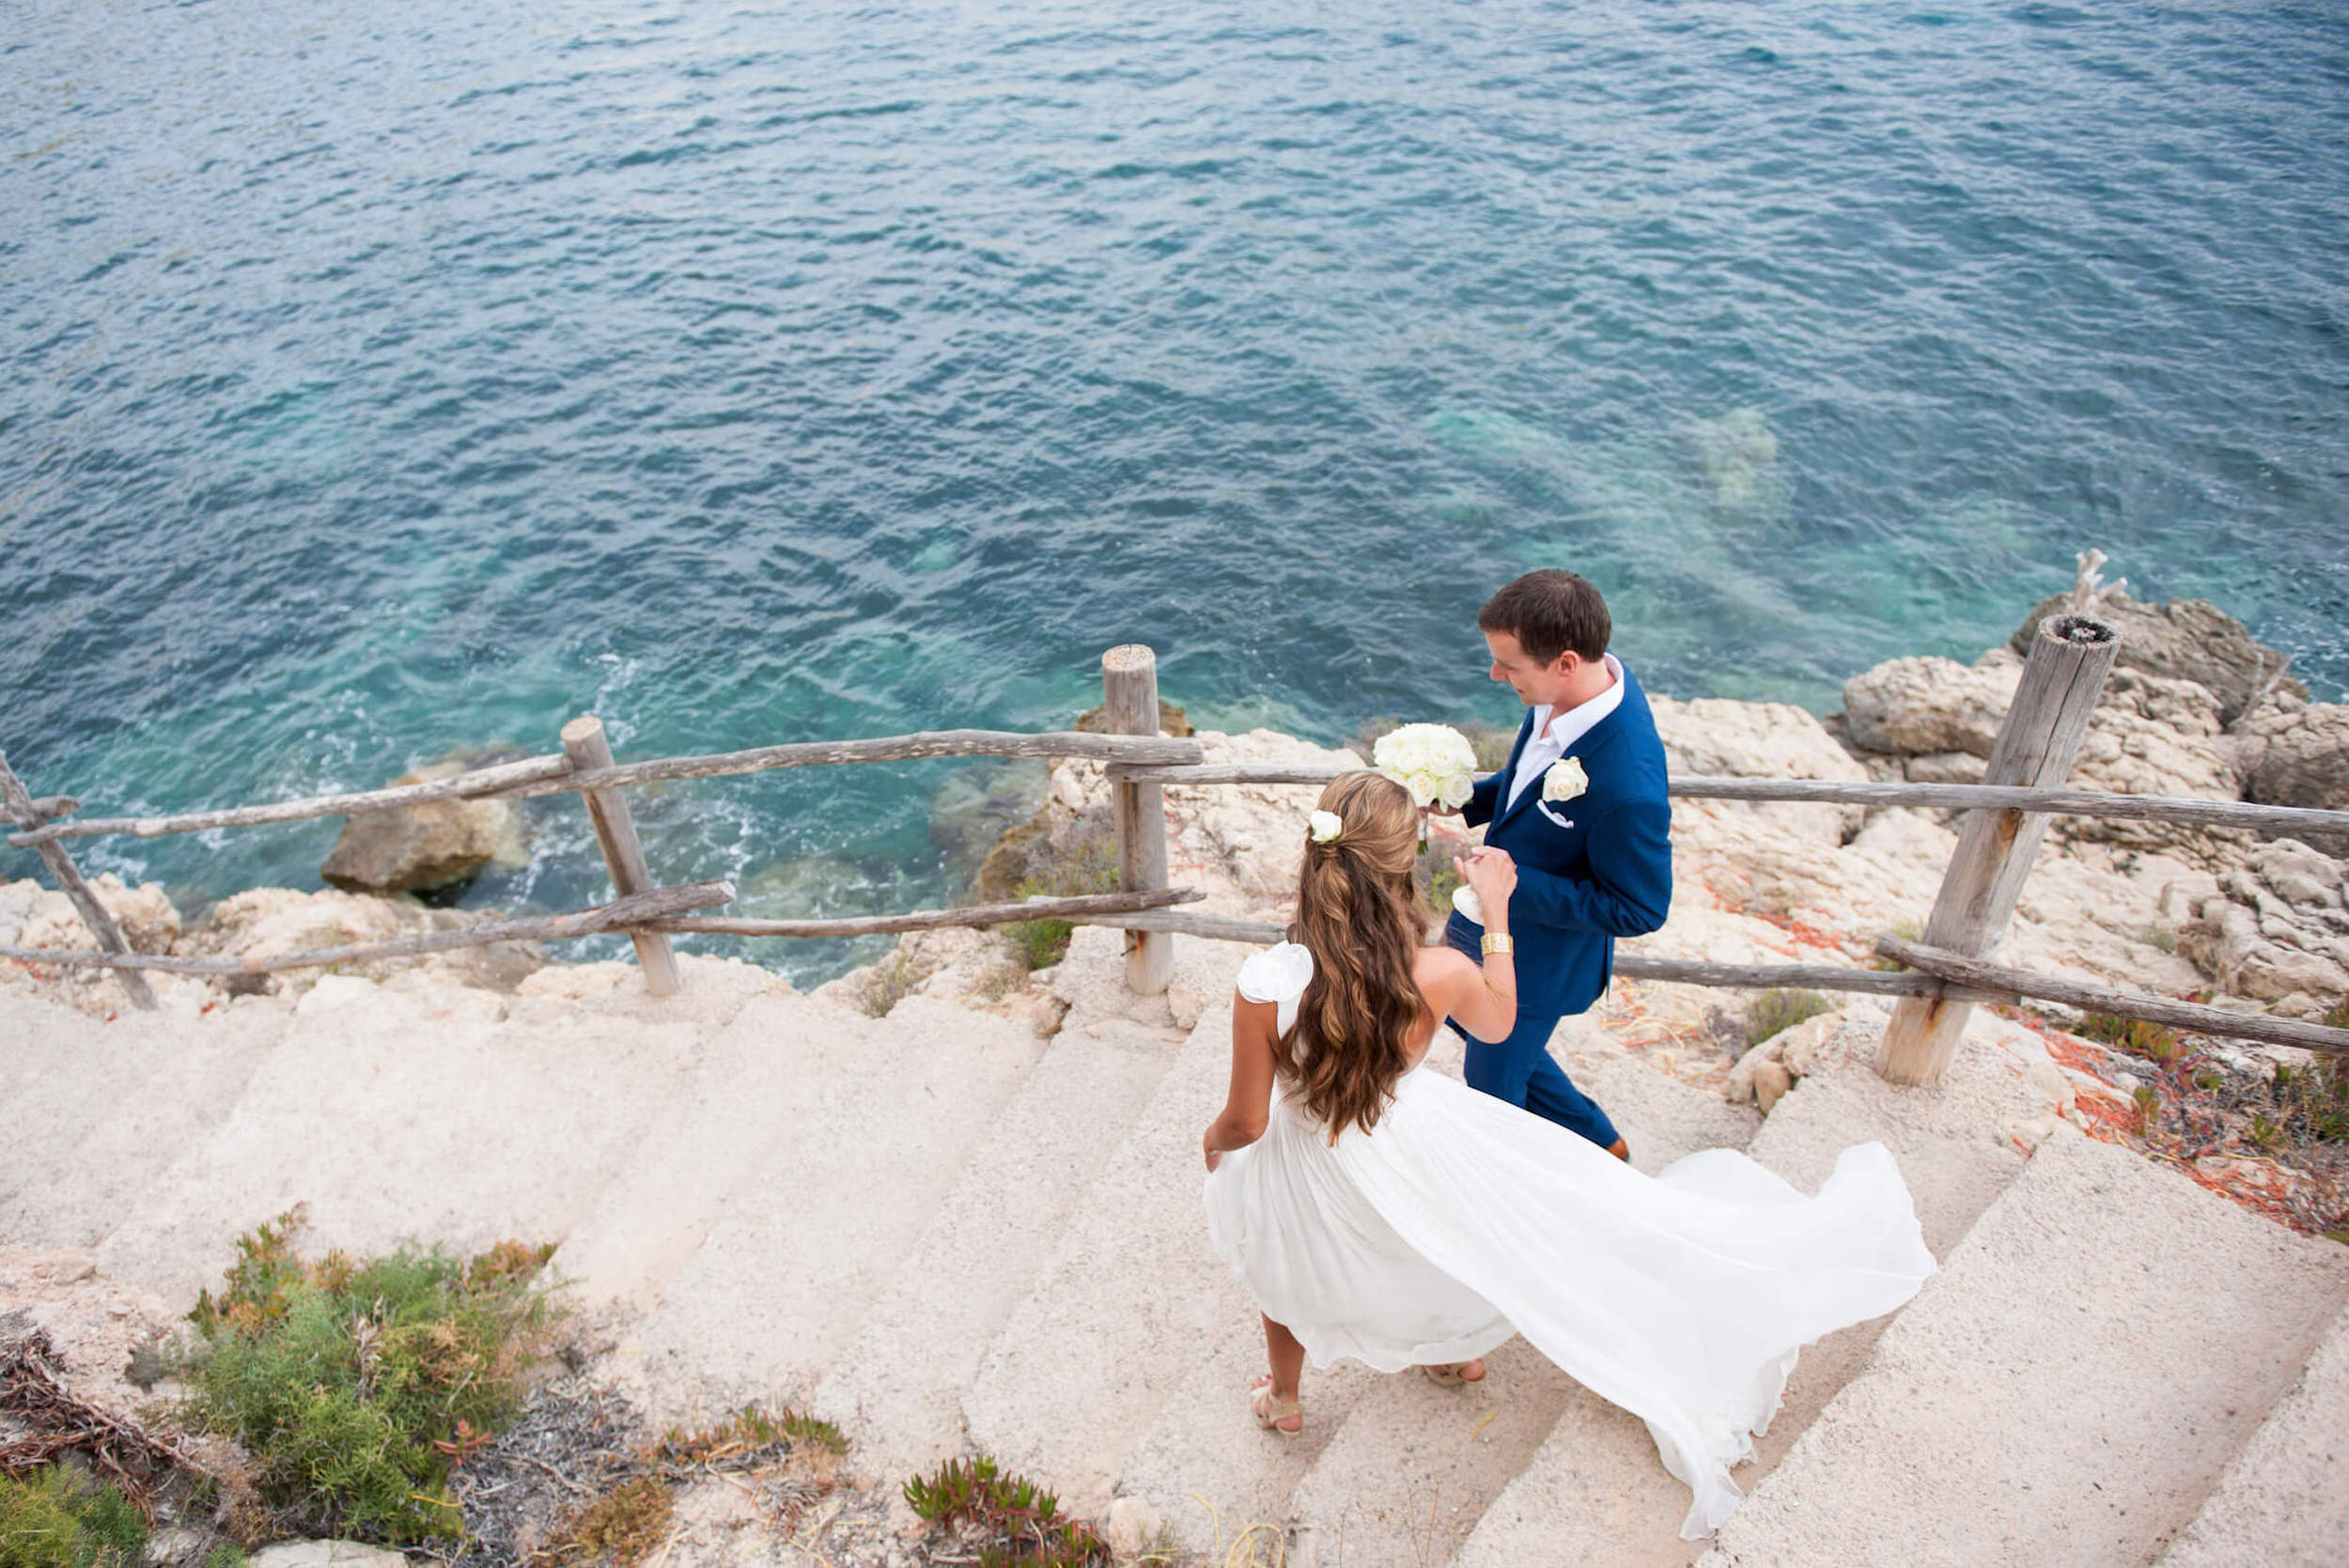 stairs seaside ceremony dress blowing wind couple es vedra